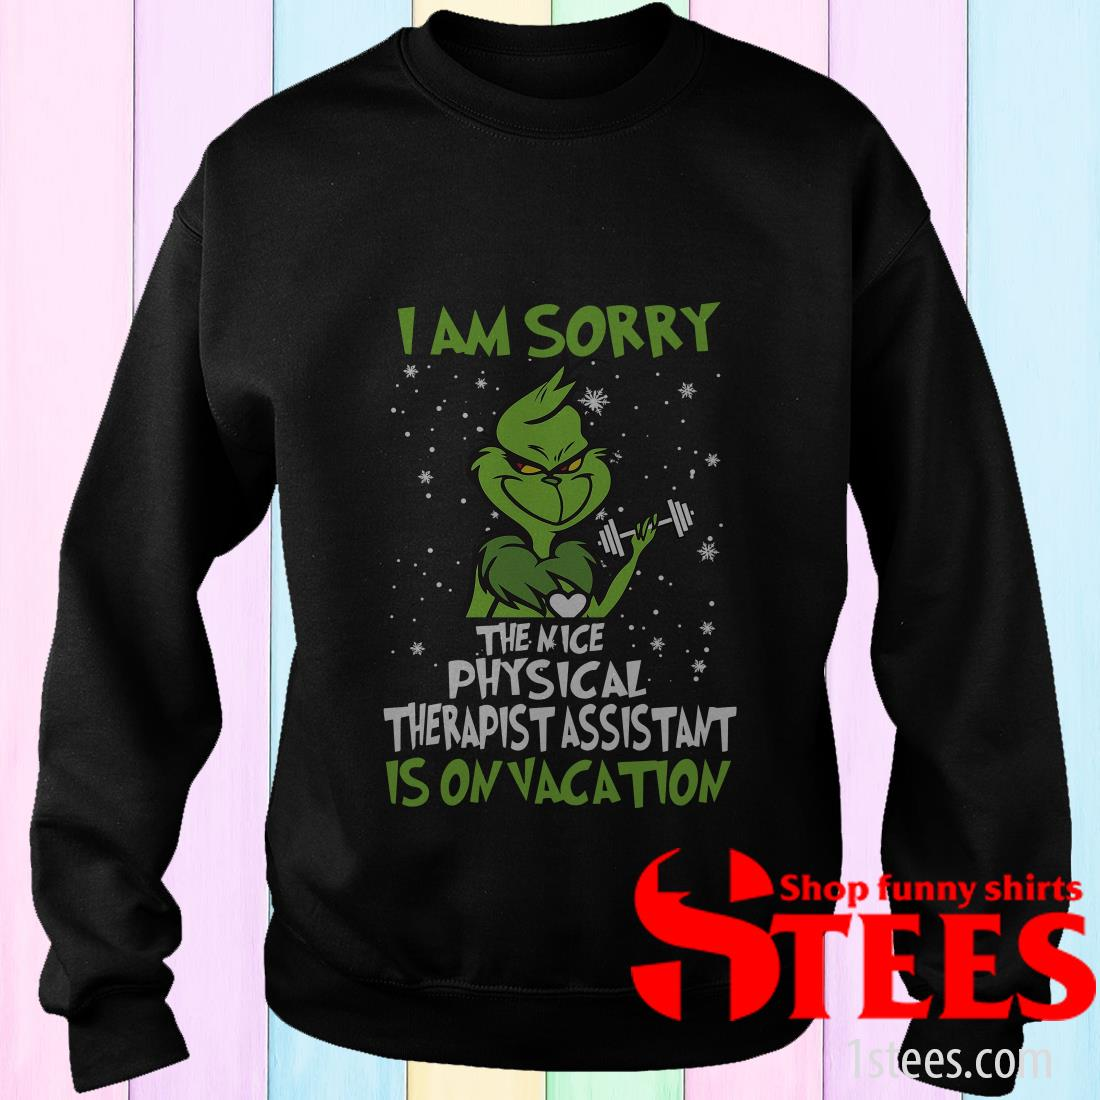 Grinch I Am Sorry The Nice Physical Therapy Assistant Is On Vacation Shirt